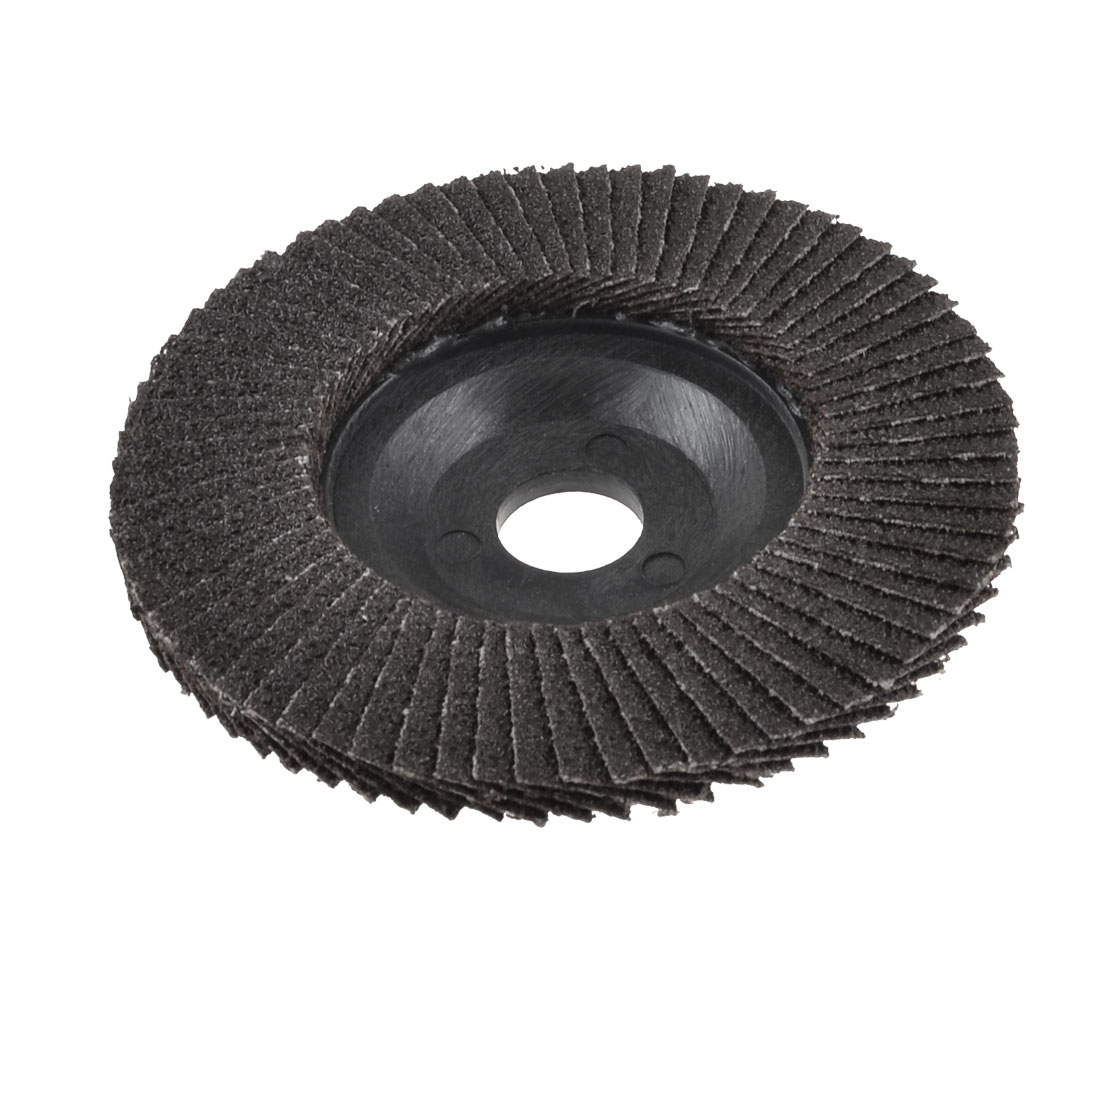 Metal Polishing 80# 100mm Dia Flap Sanding Abrasive Wheels Discs